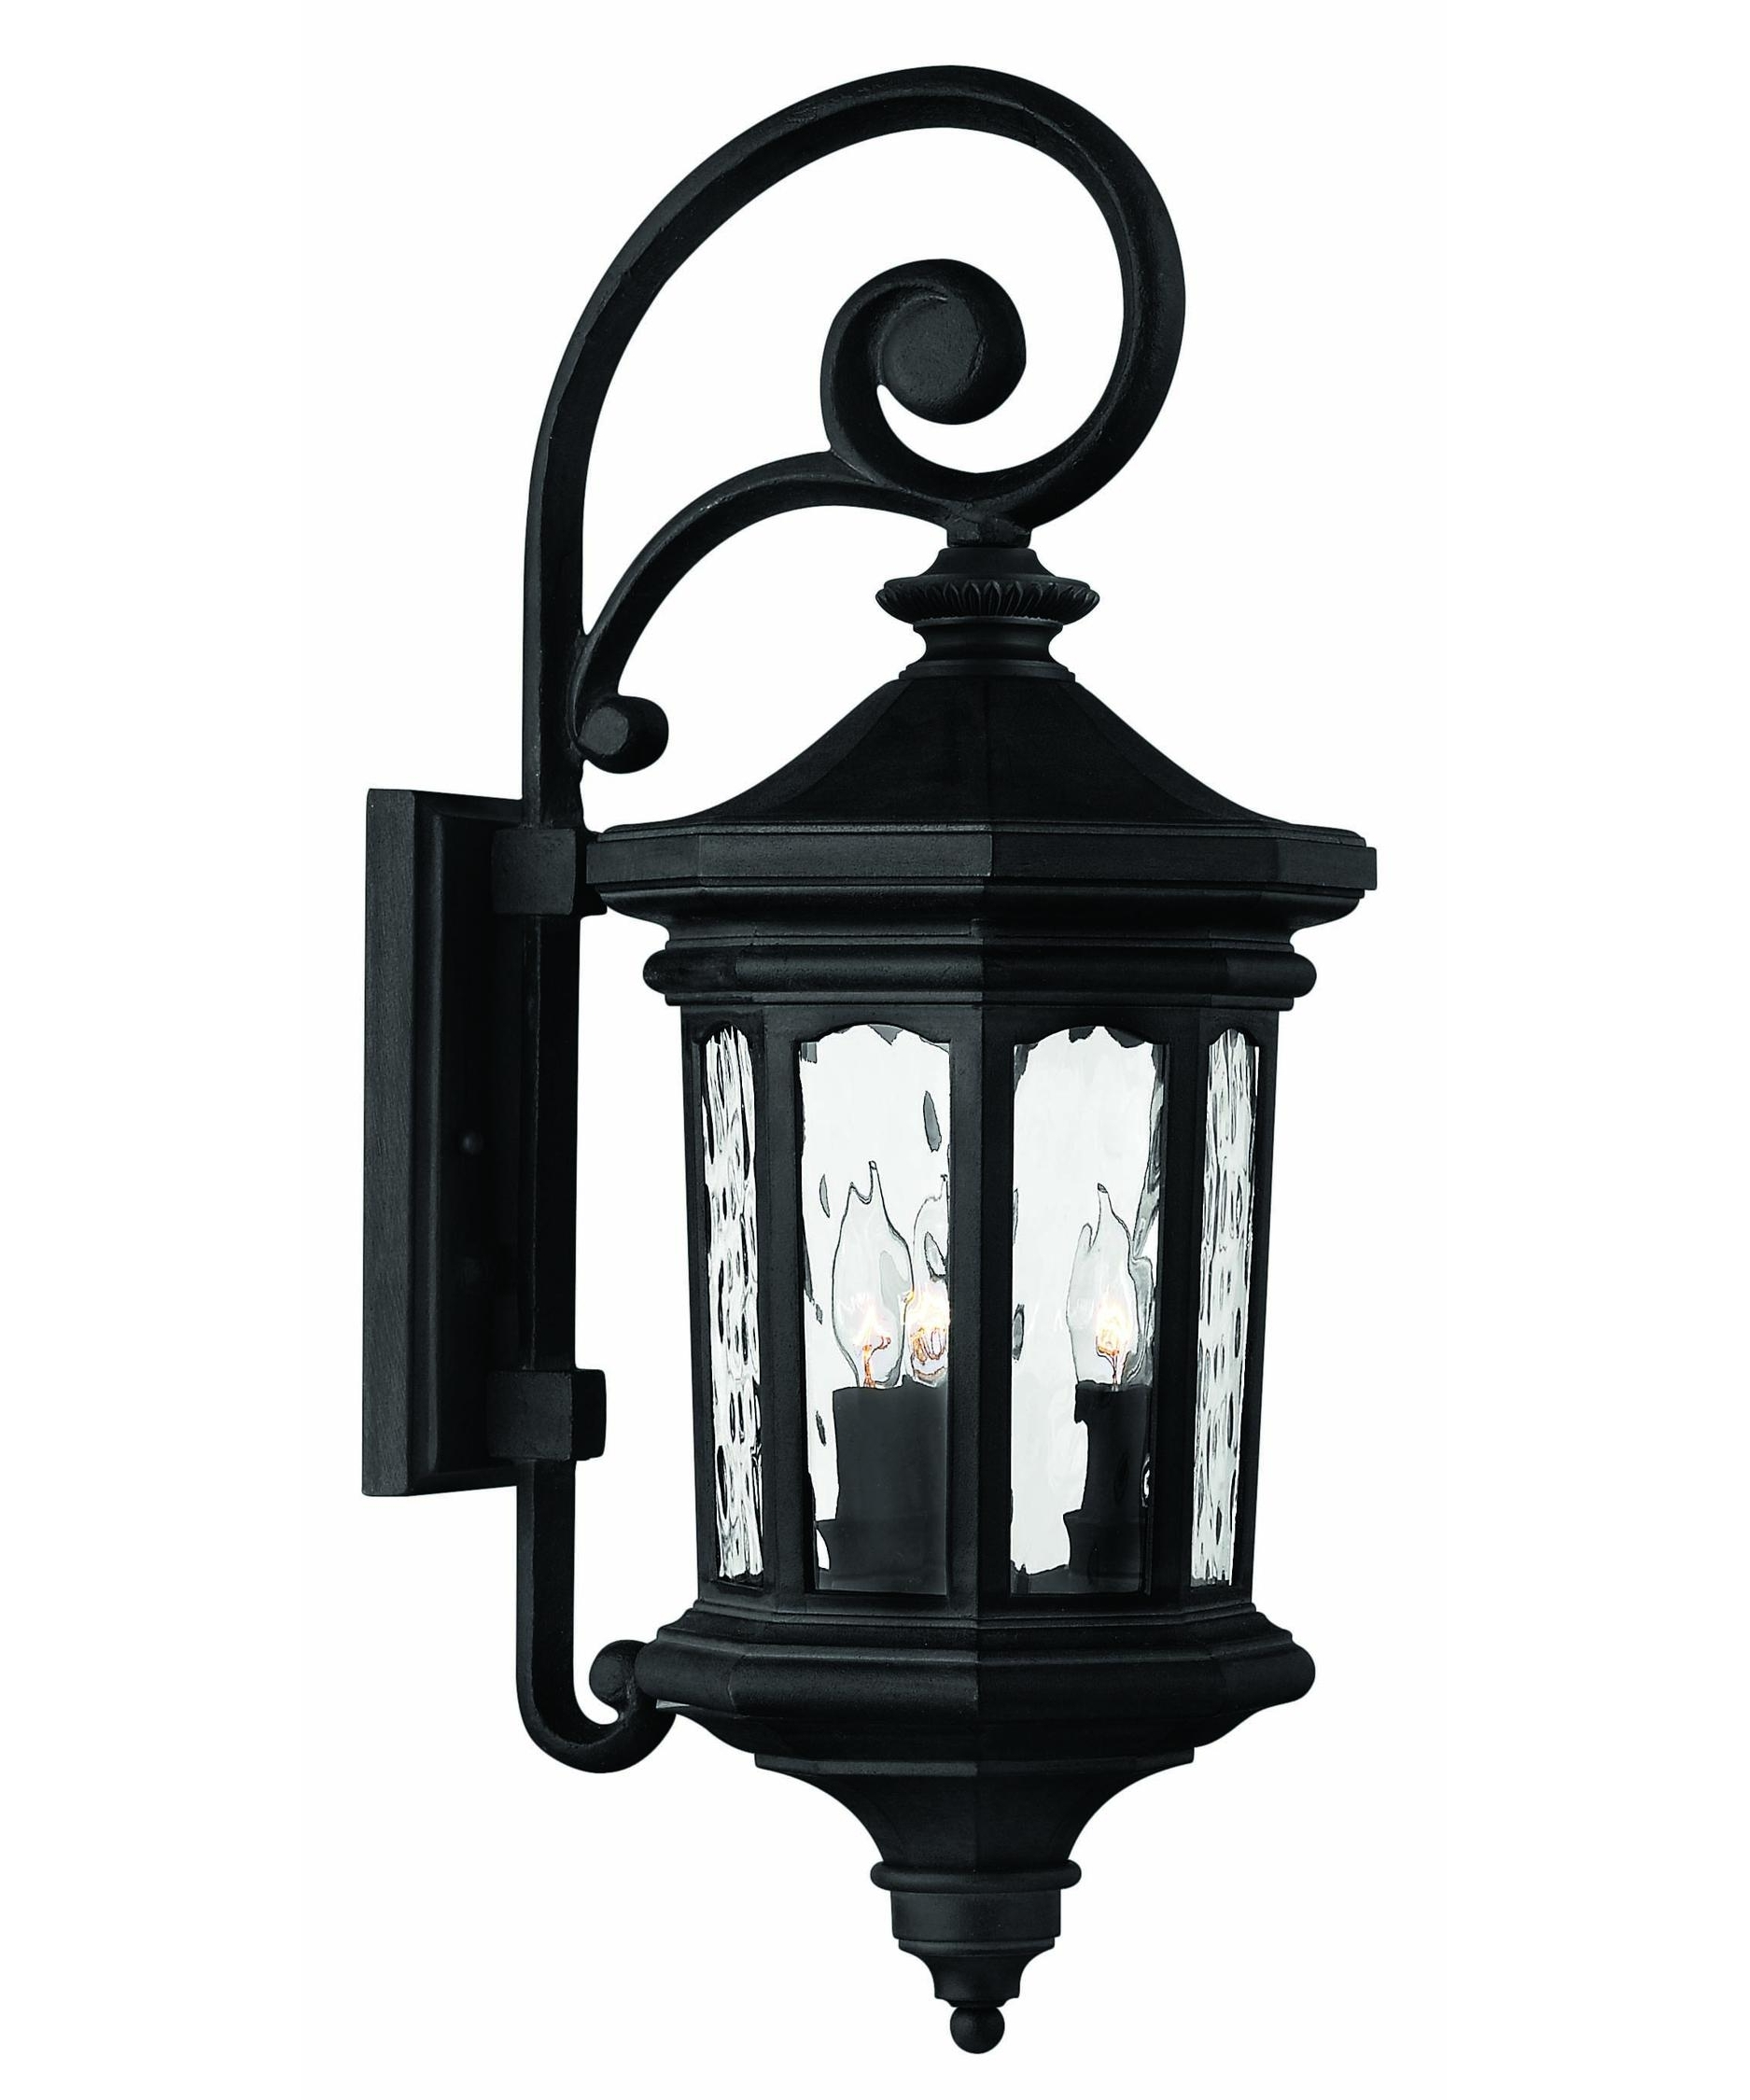 Most Recently Released Hinkley Lighting For Modern Garden Regarding Hinkley Lighting 1604 Raley 10 Inch Wide 3 Light Outdoor Wall Light (View 8 of 20)